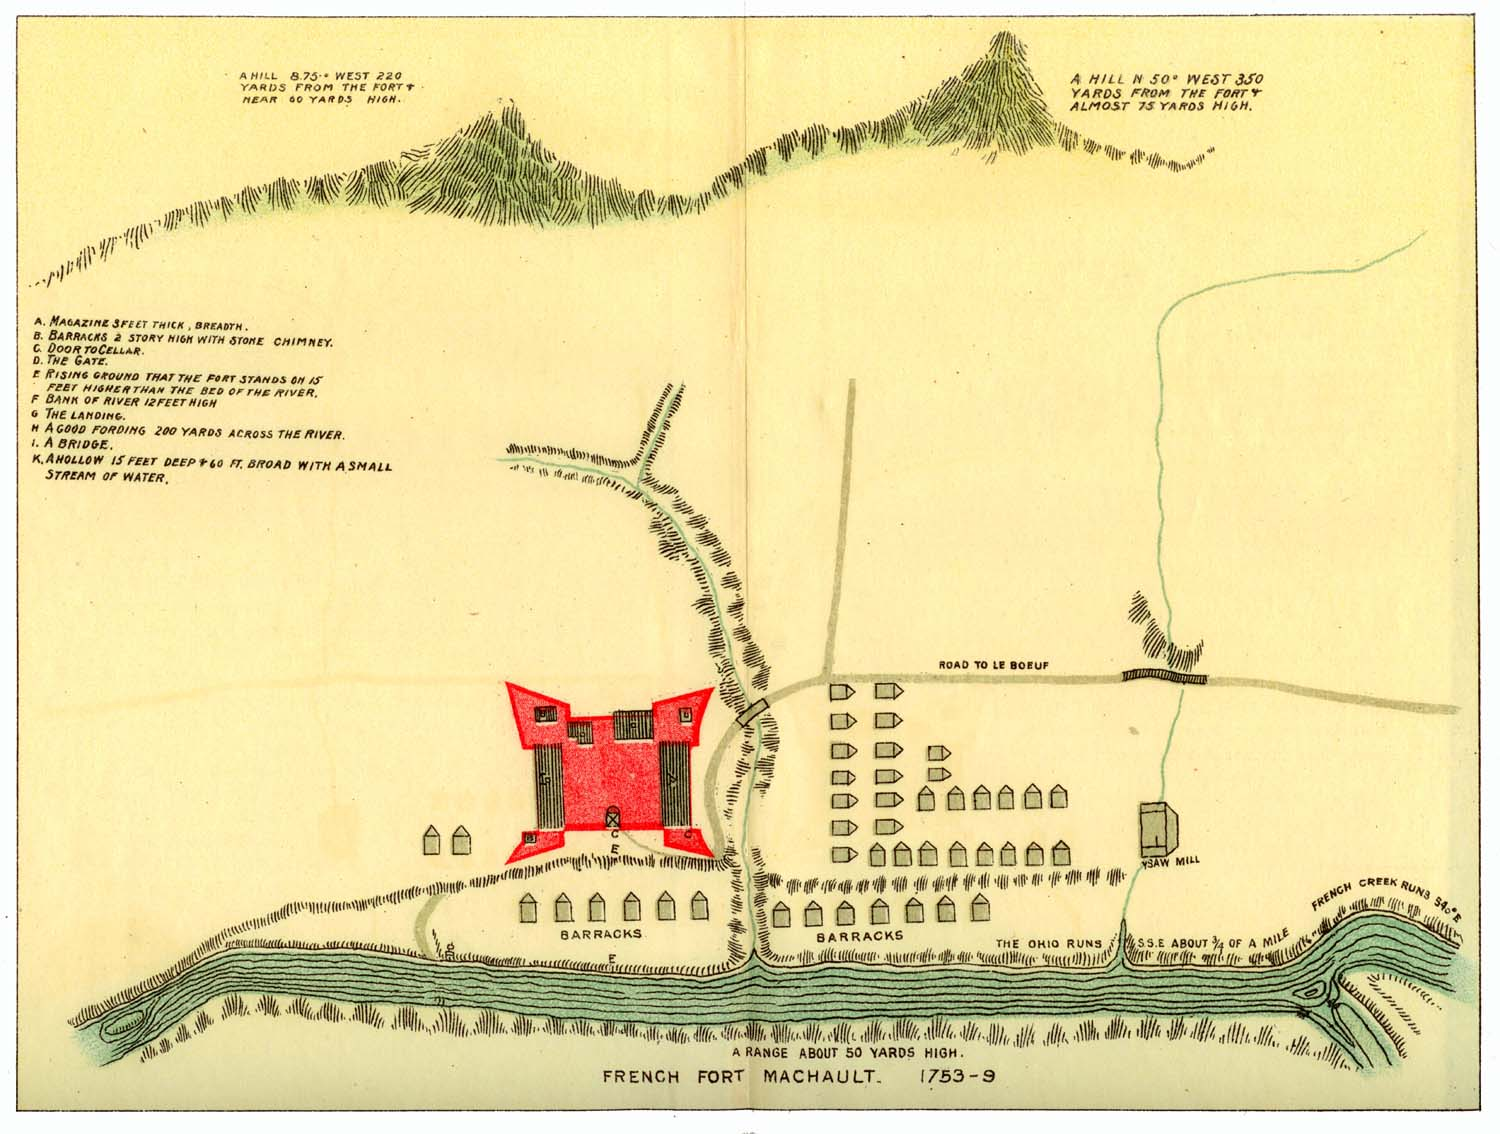 Overhead map of Fort Machault